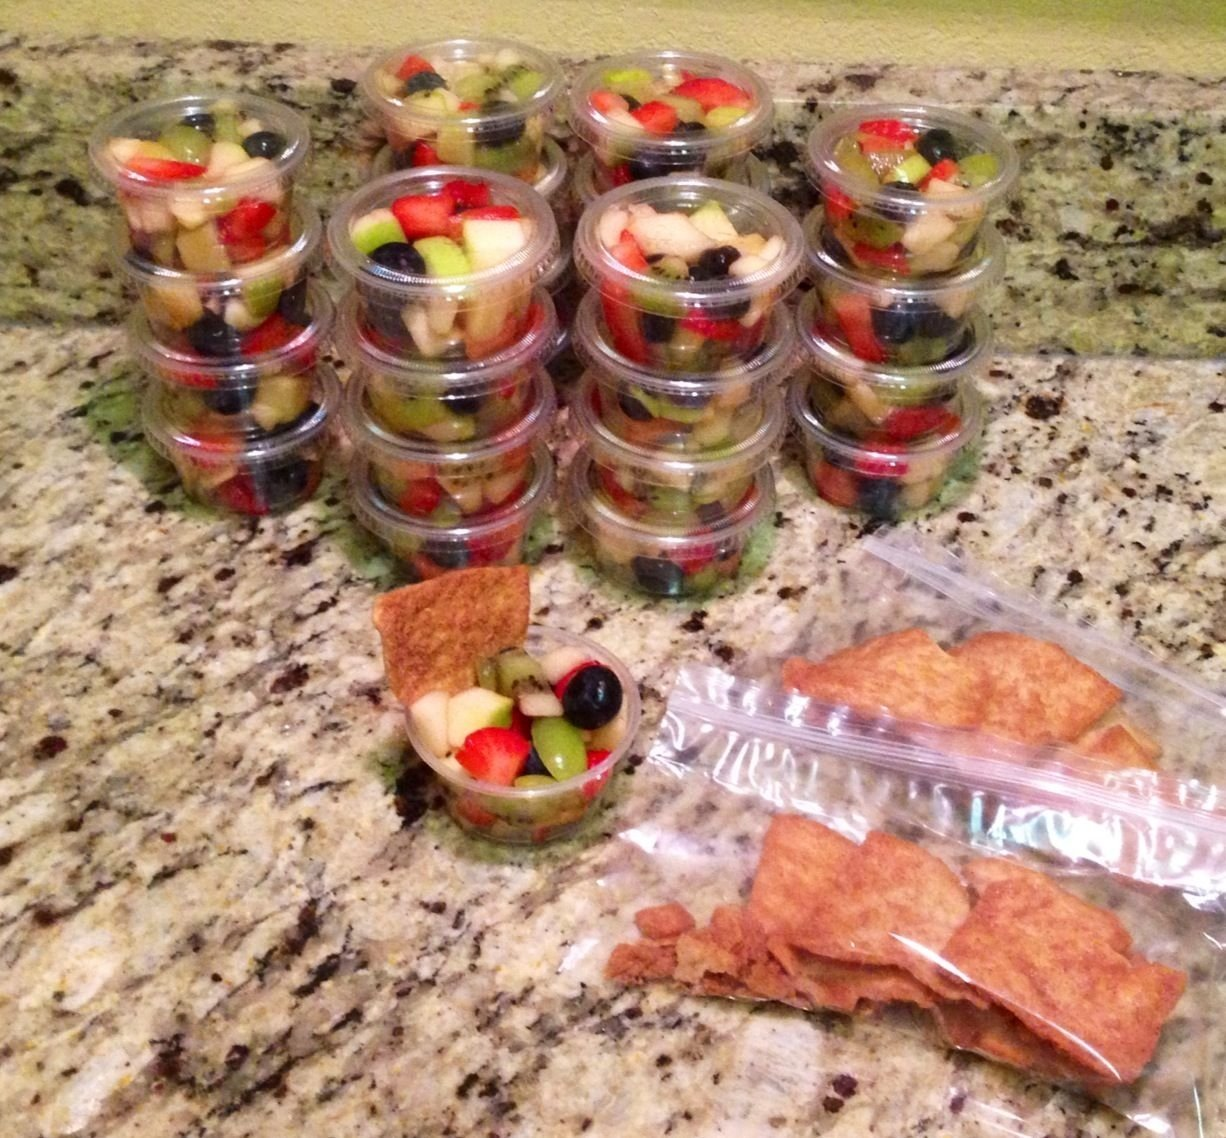 10 Attractive Snack Ideas For Kindergarten Class kindergarten class snack fruit salad cups with stacys cinnamon 2020